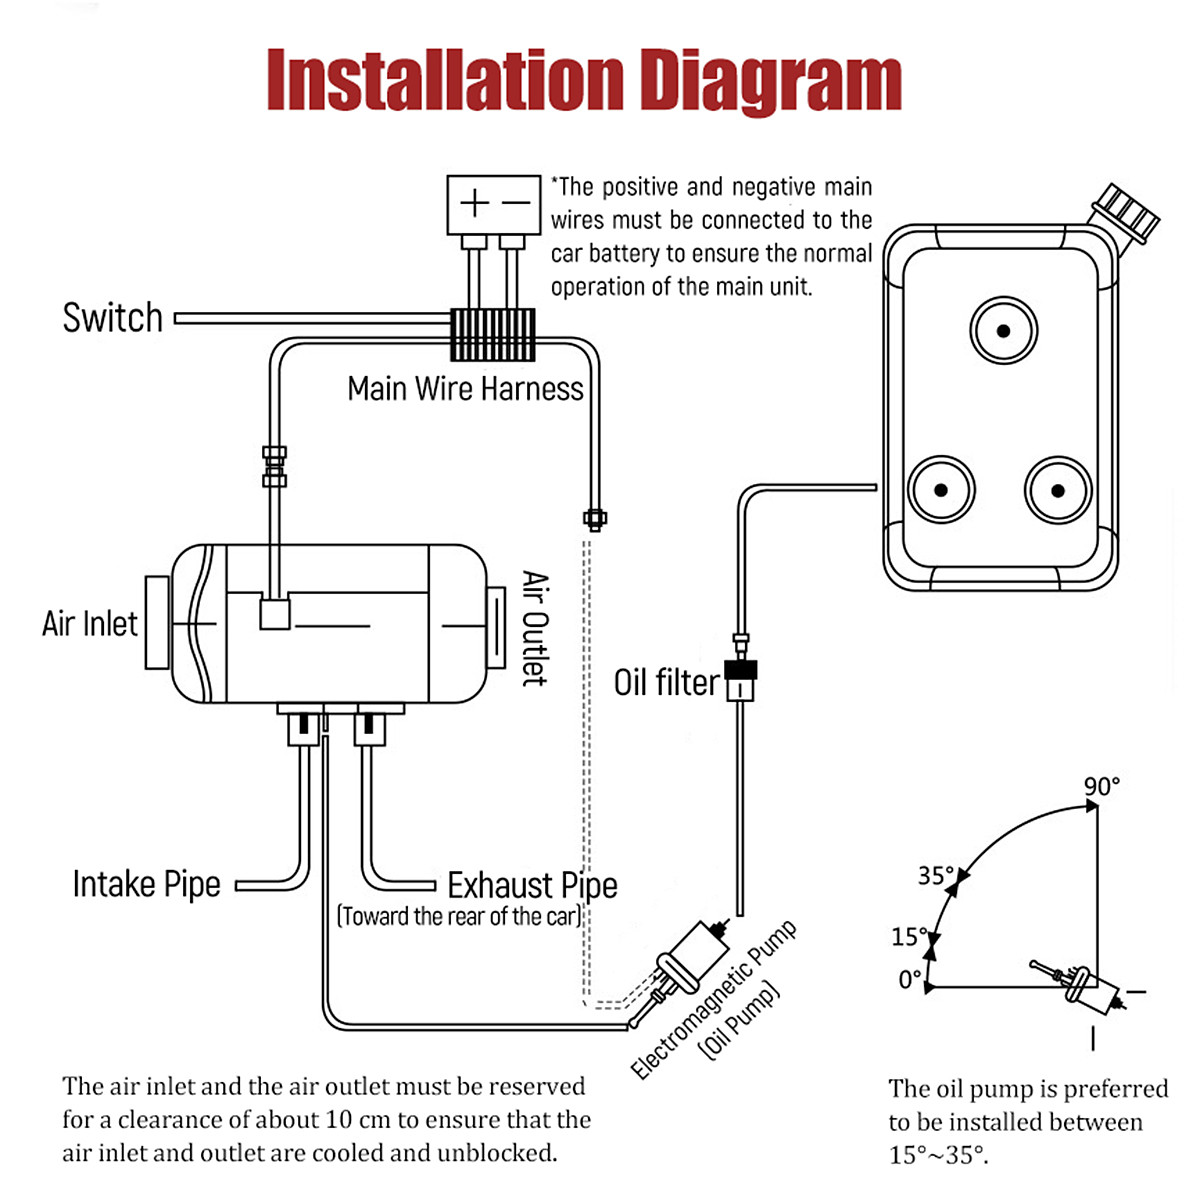 hight resolution of 12v fuel heater wiring diagram library wiring diagram3kw 12v air diesel fuel heater planar set warm